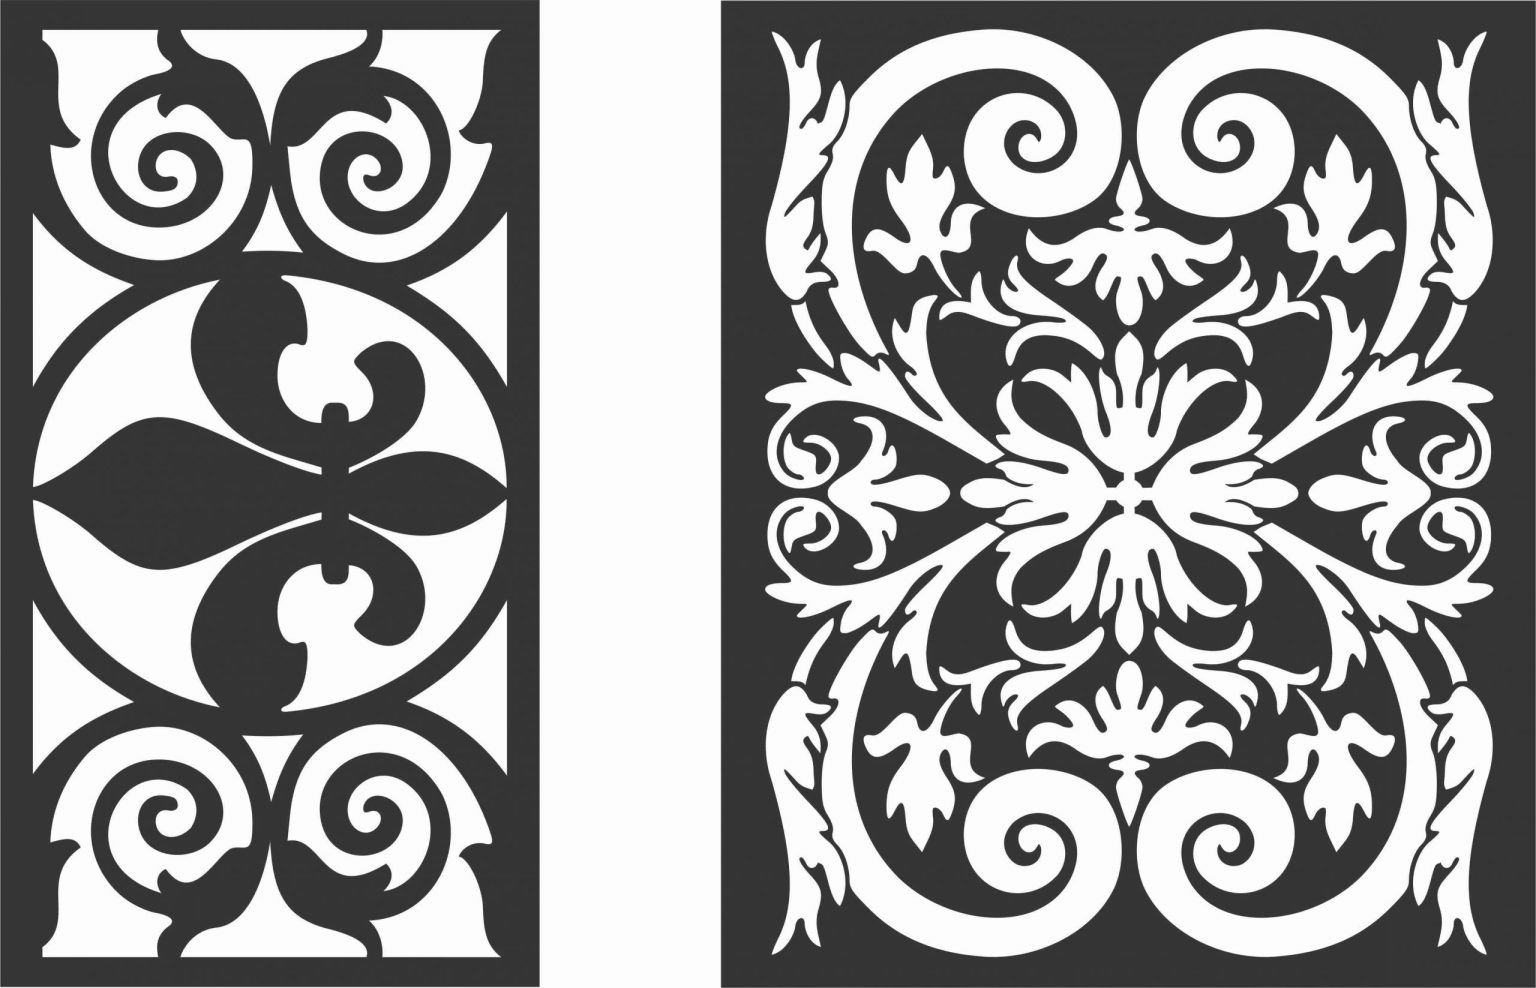 Floral Screen Patterns Design 24 Free DXF File